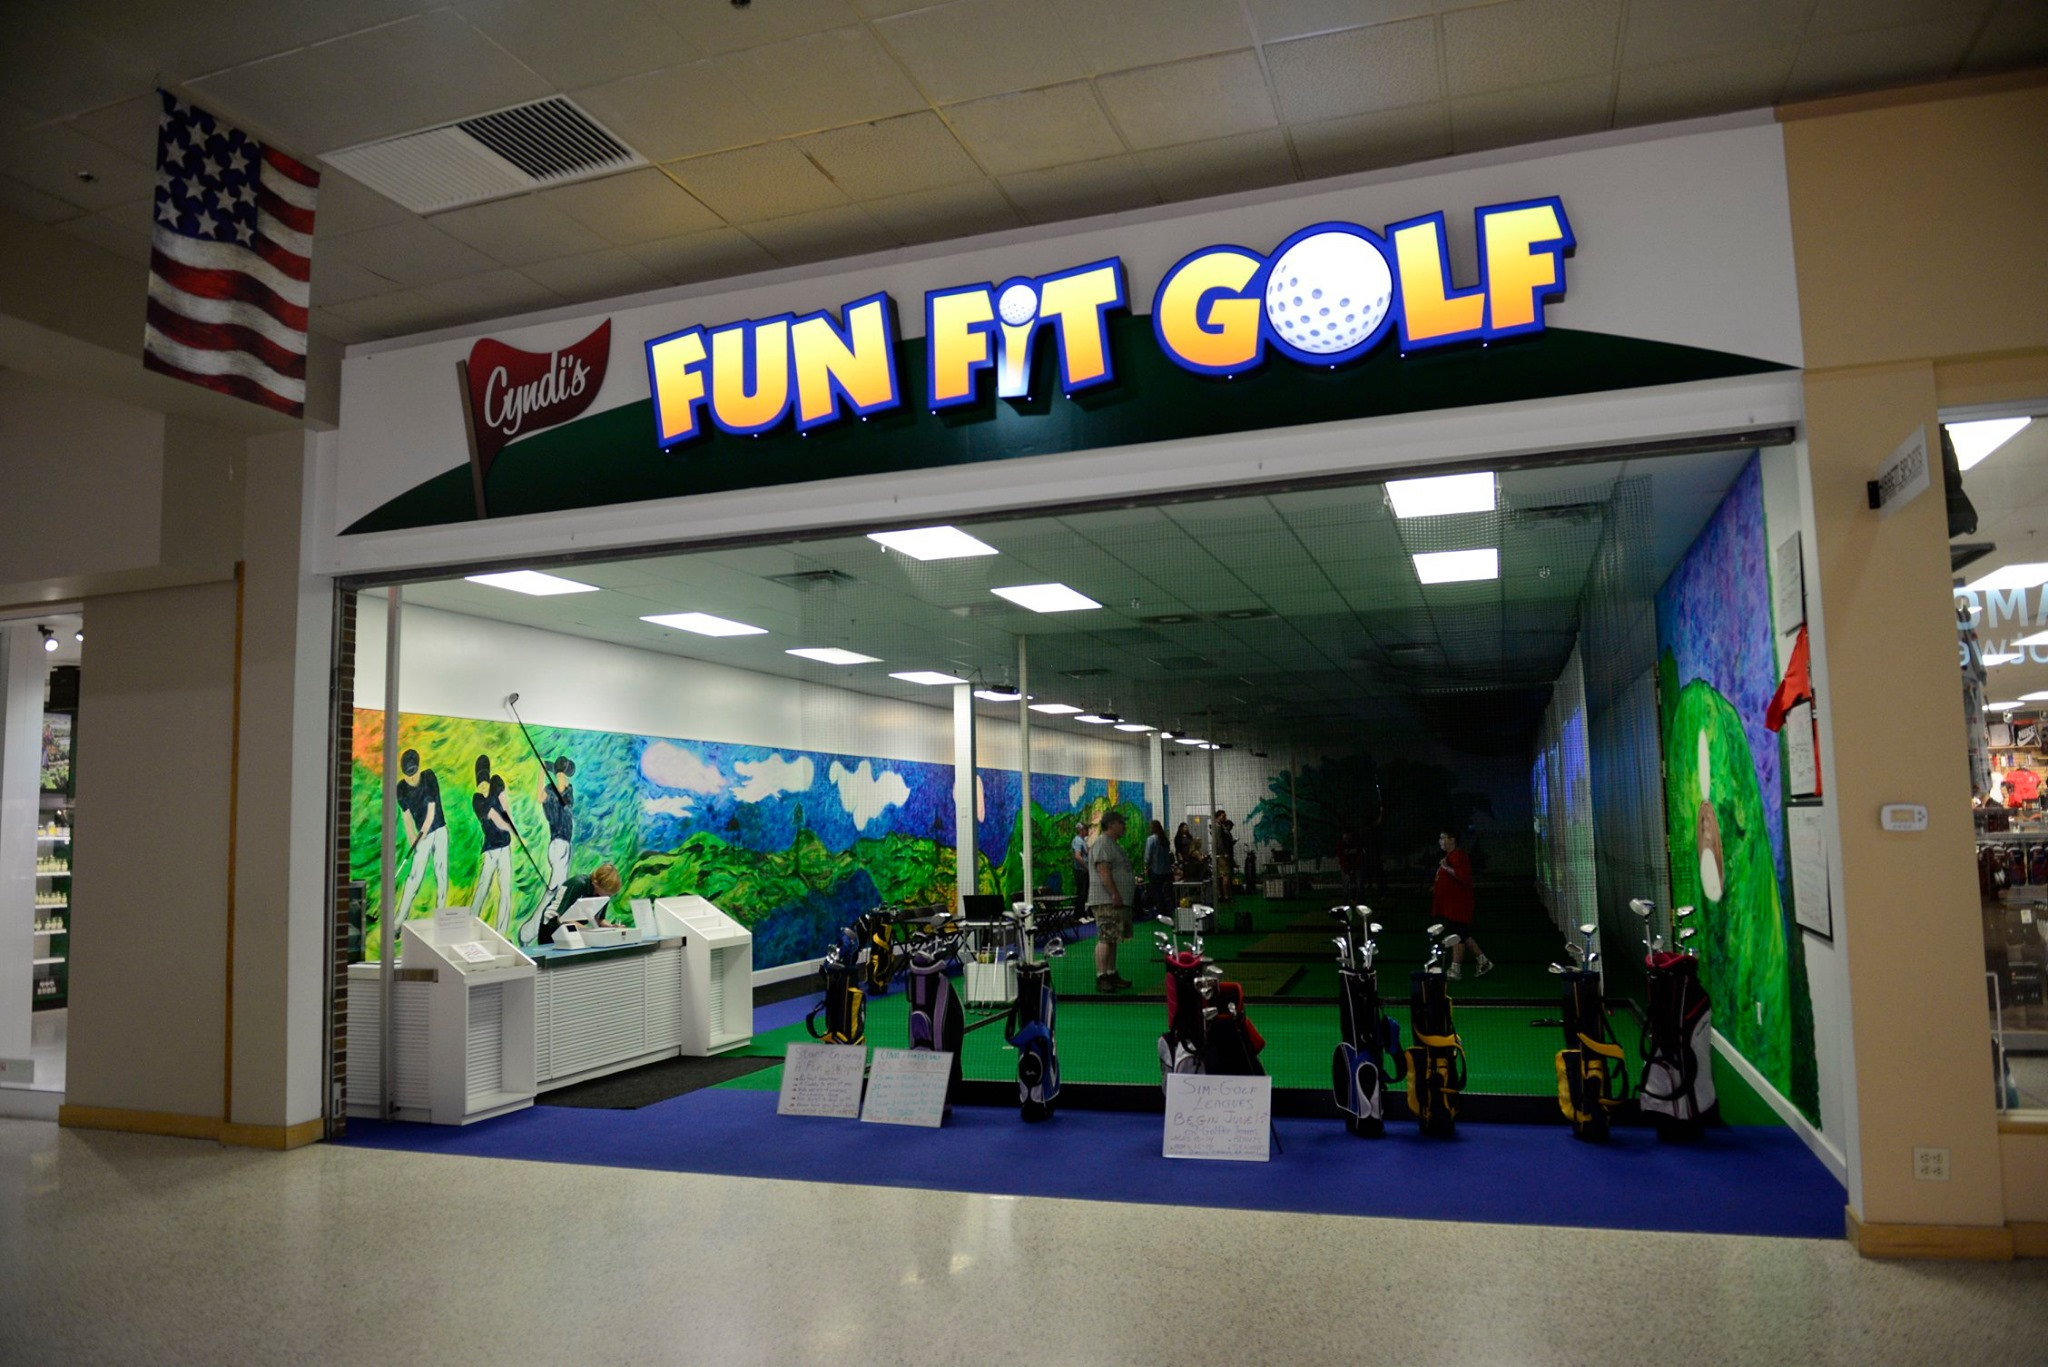 Cyndi's Fut Fit Golf in Norfolk, NE